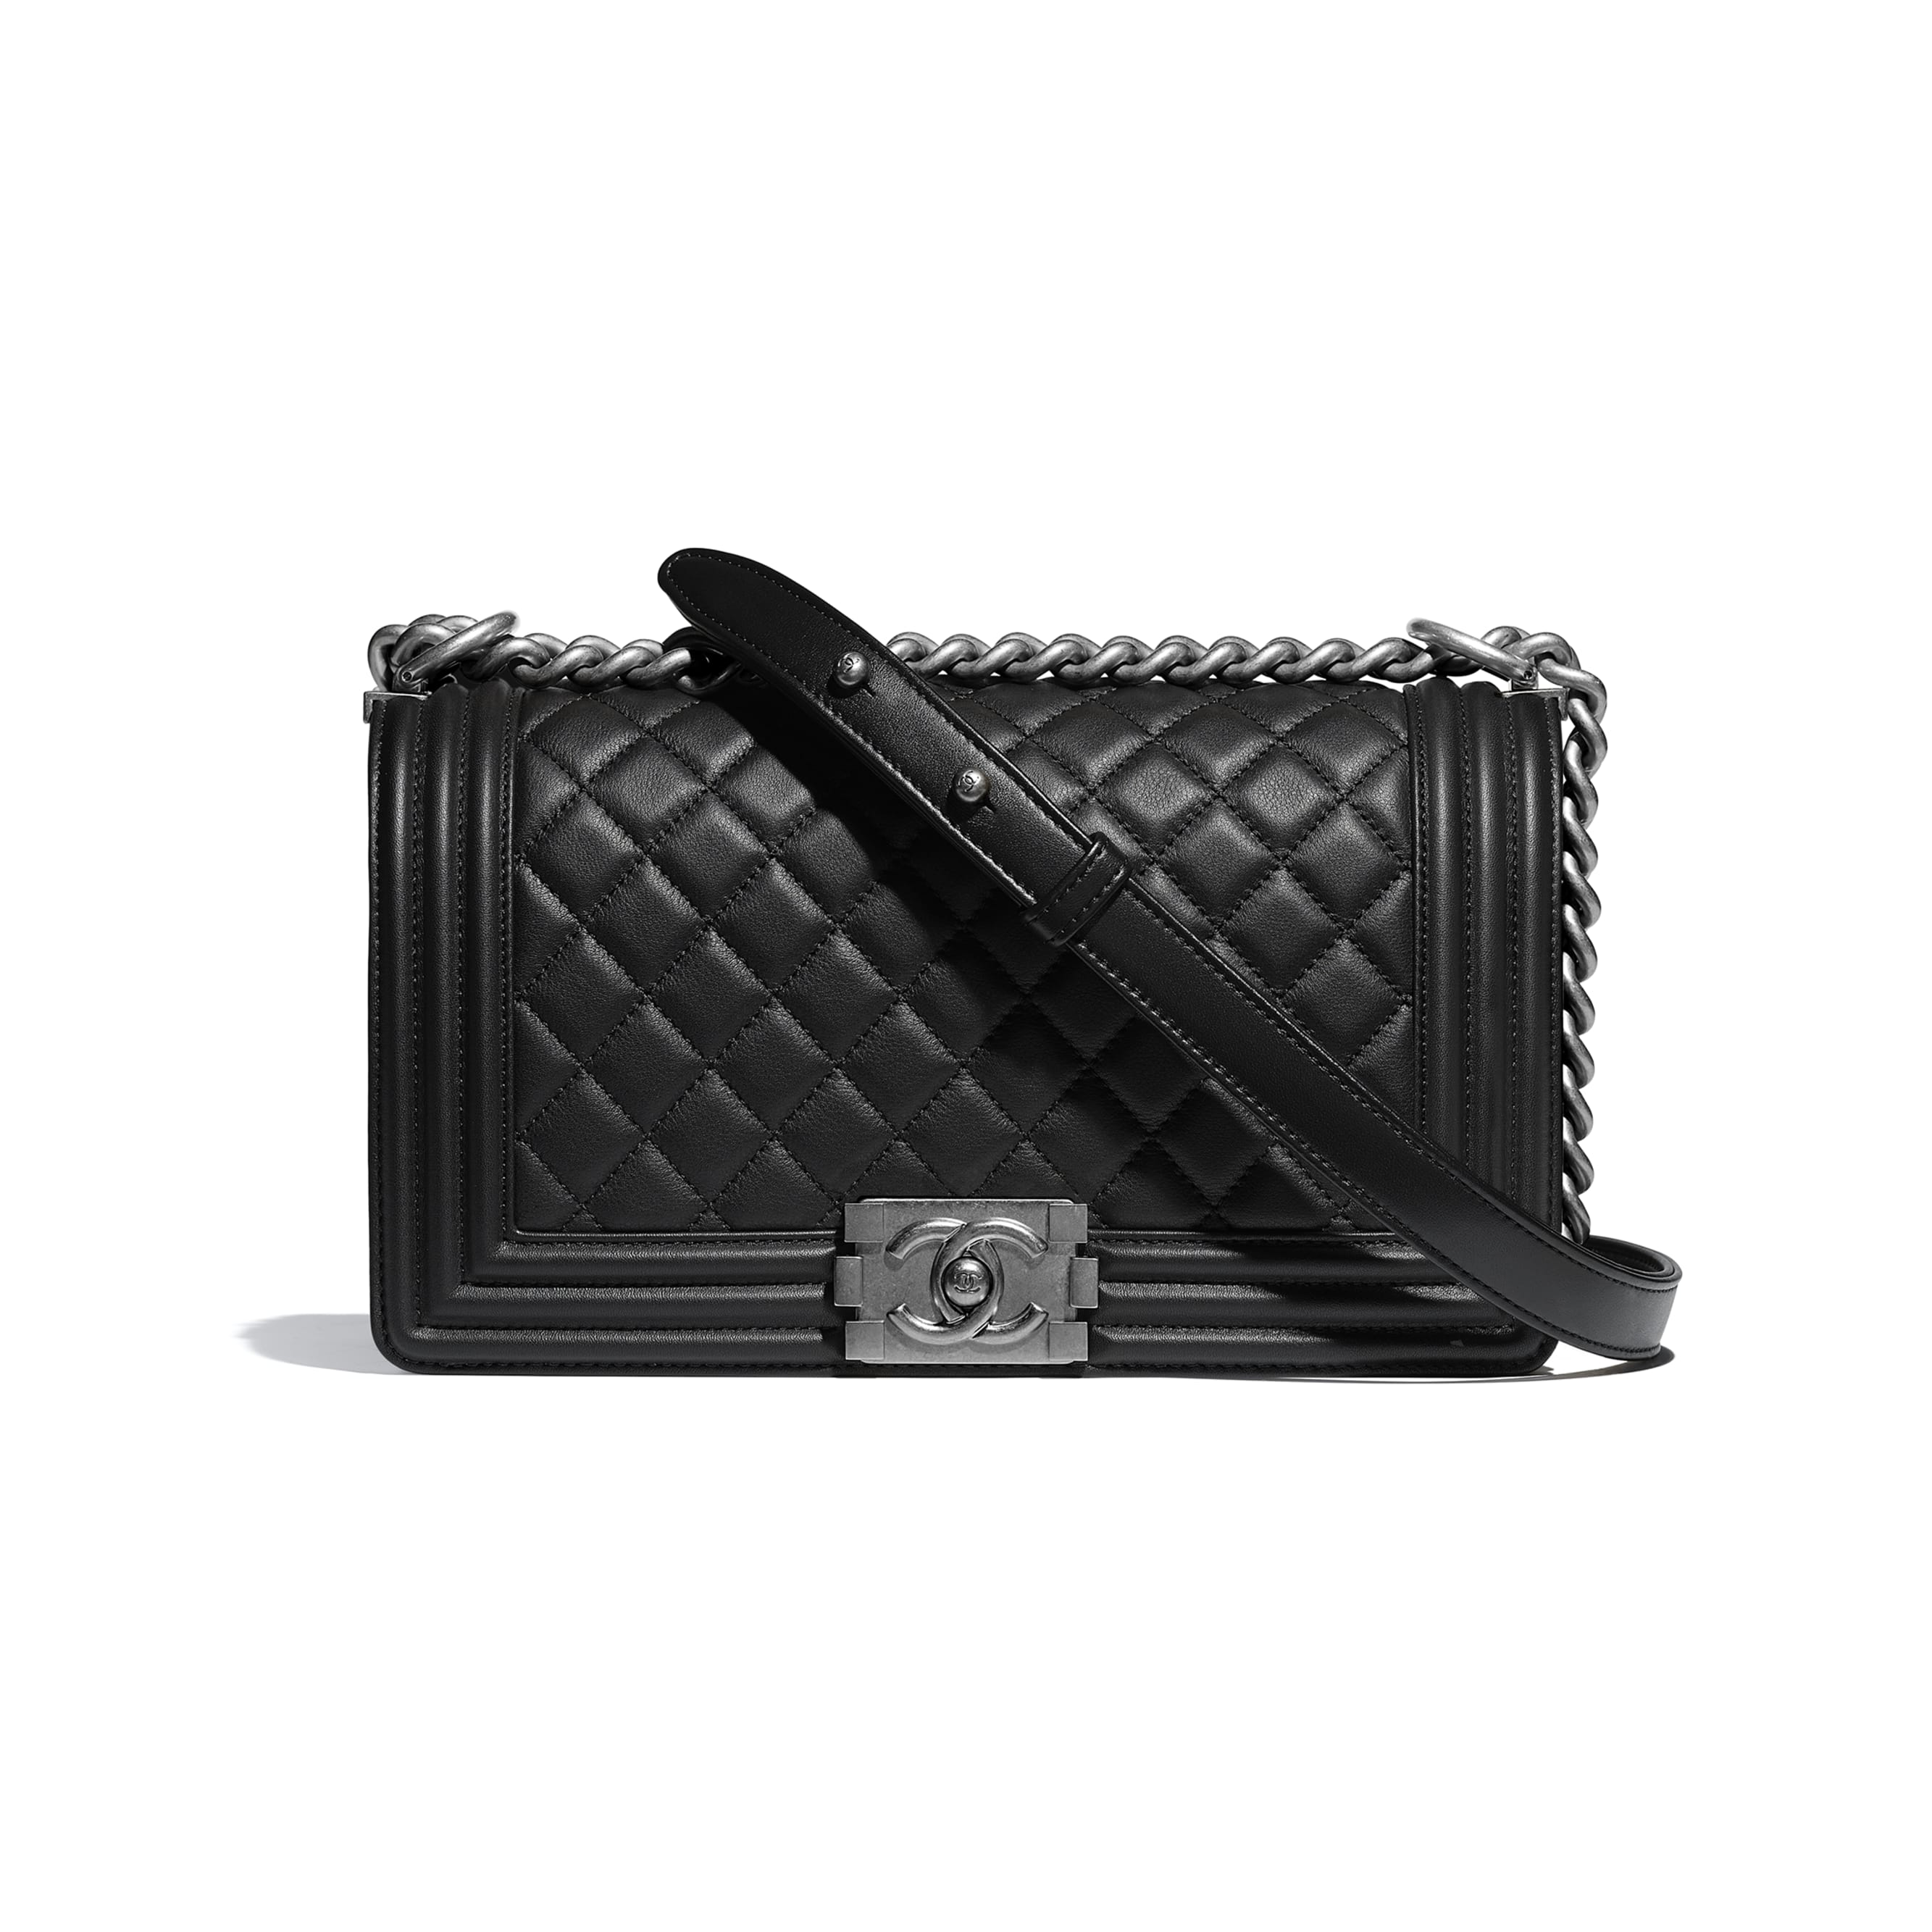 BOY CHANEL Handbag - Black - Calfskin & Ruthenium-Finish Metal - CHANEL - Default view - see standard sized version